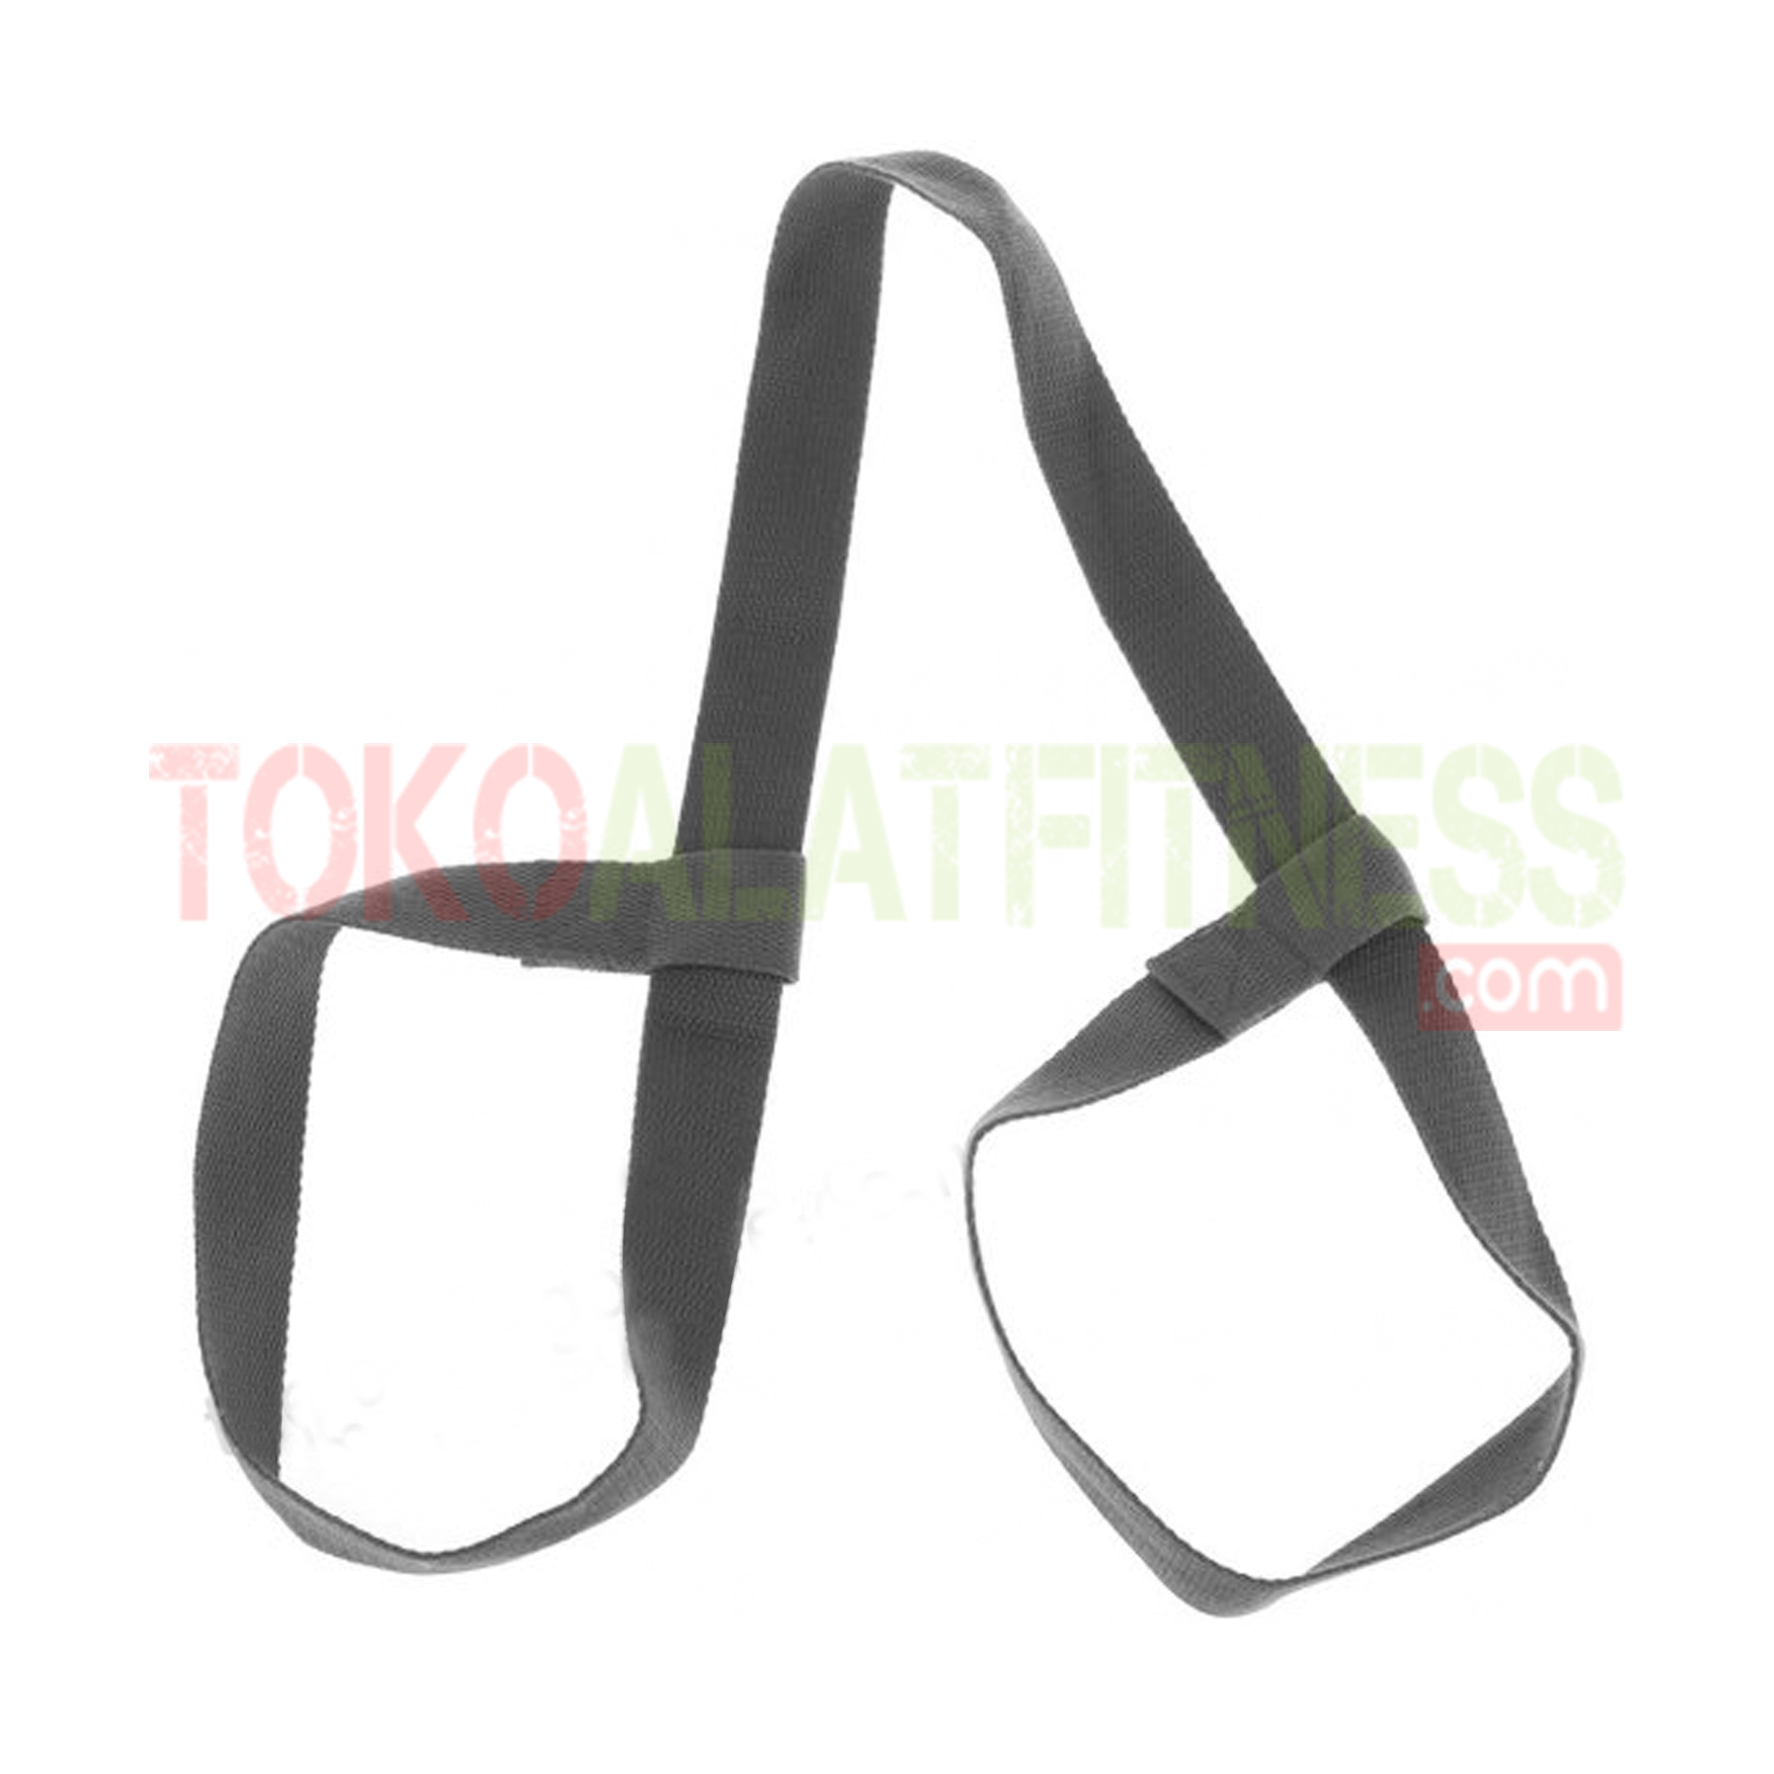 YOGA MAT STRAP GREY WTM - Yoga Mat Strap, Grey Body Gym